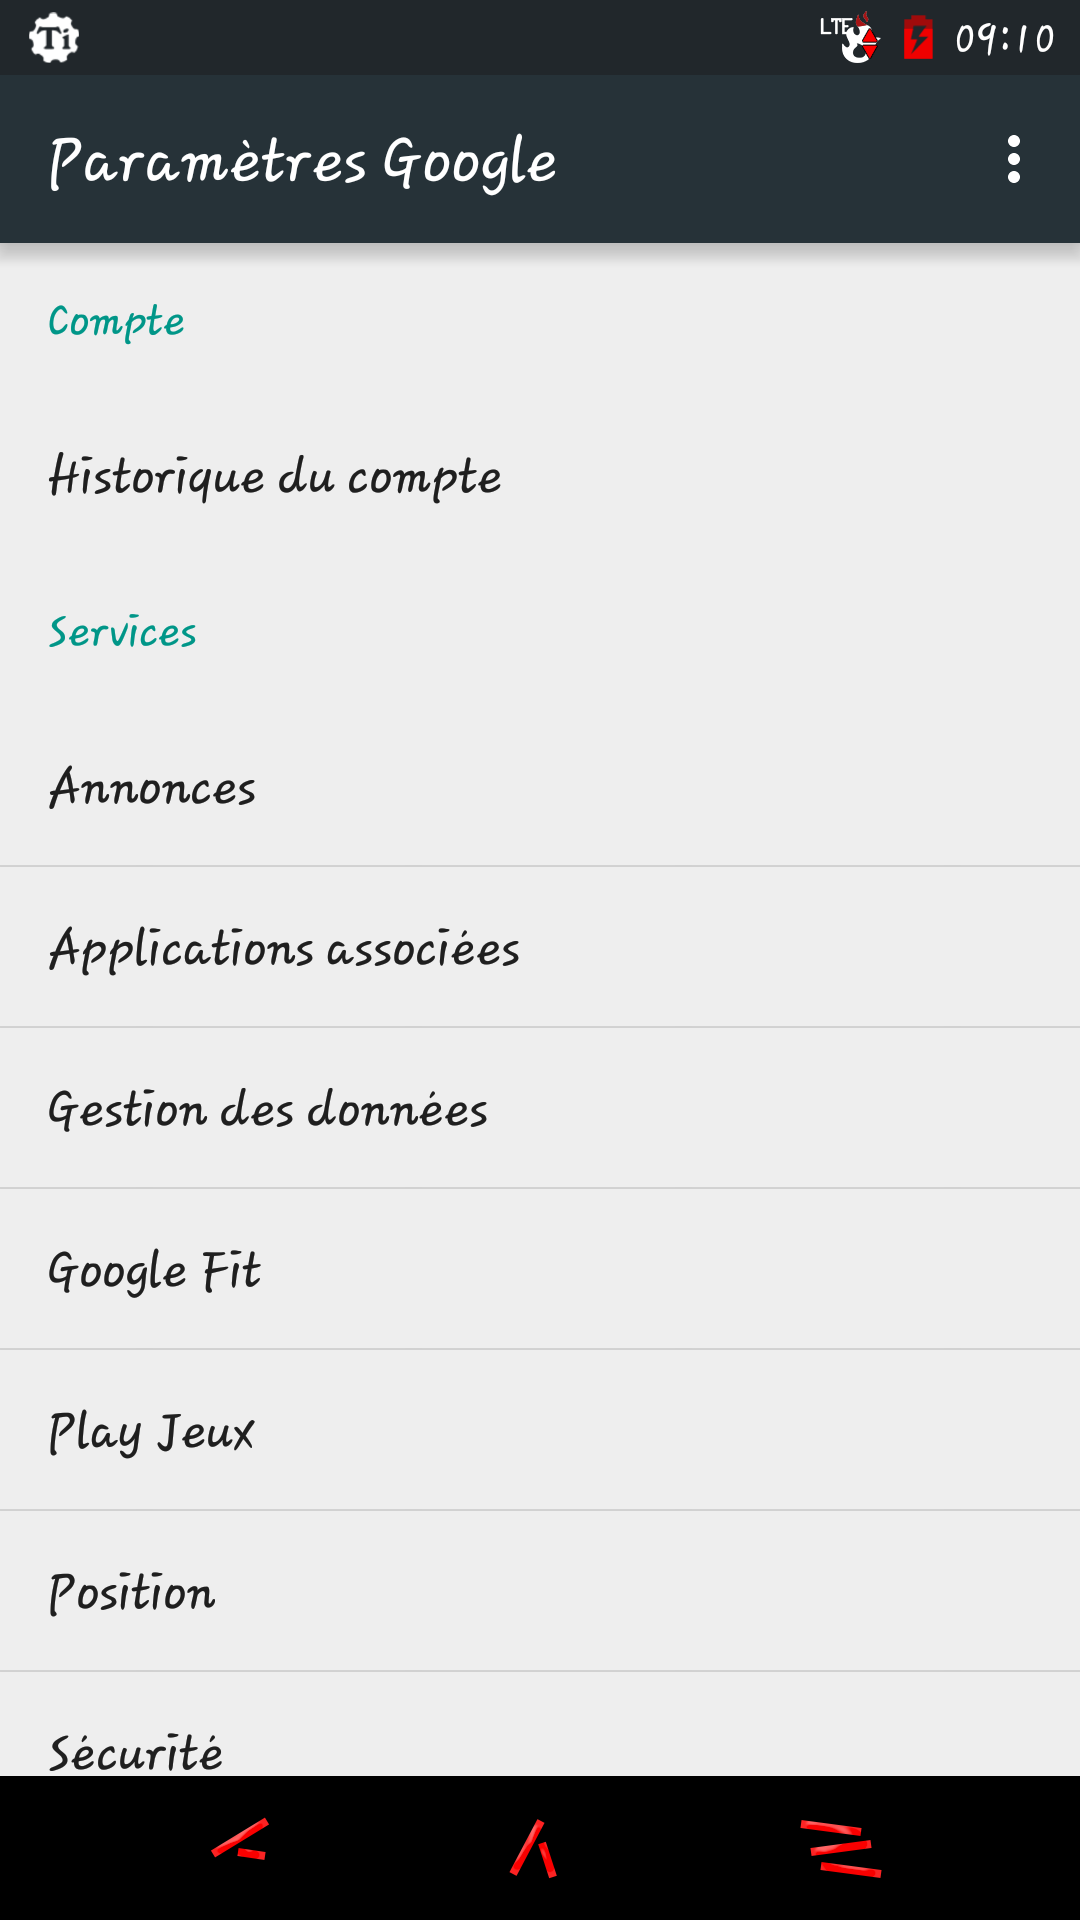 [VIE PRIVEE-PARAMETRES GOOGLE] Application Paramètres Google au microscope 143013691279053